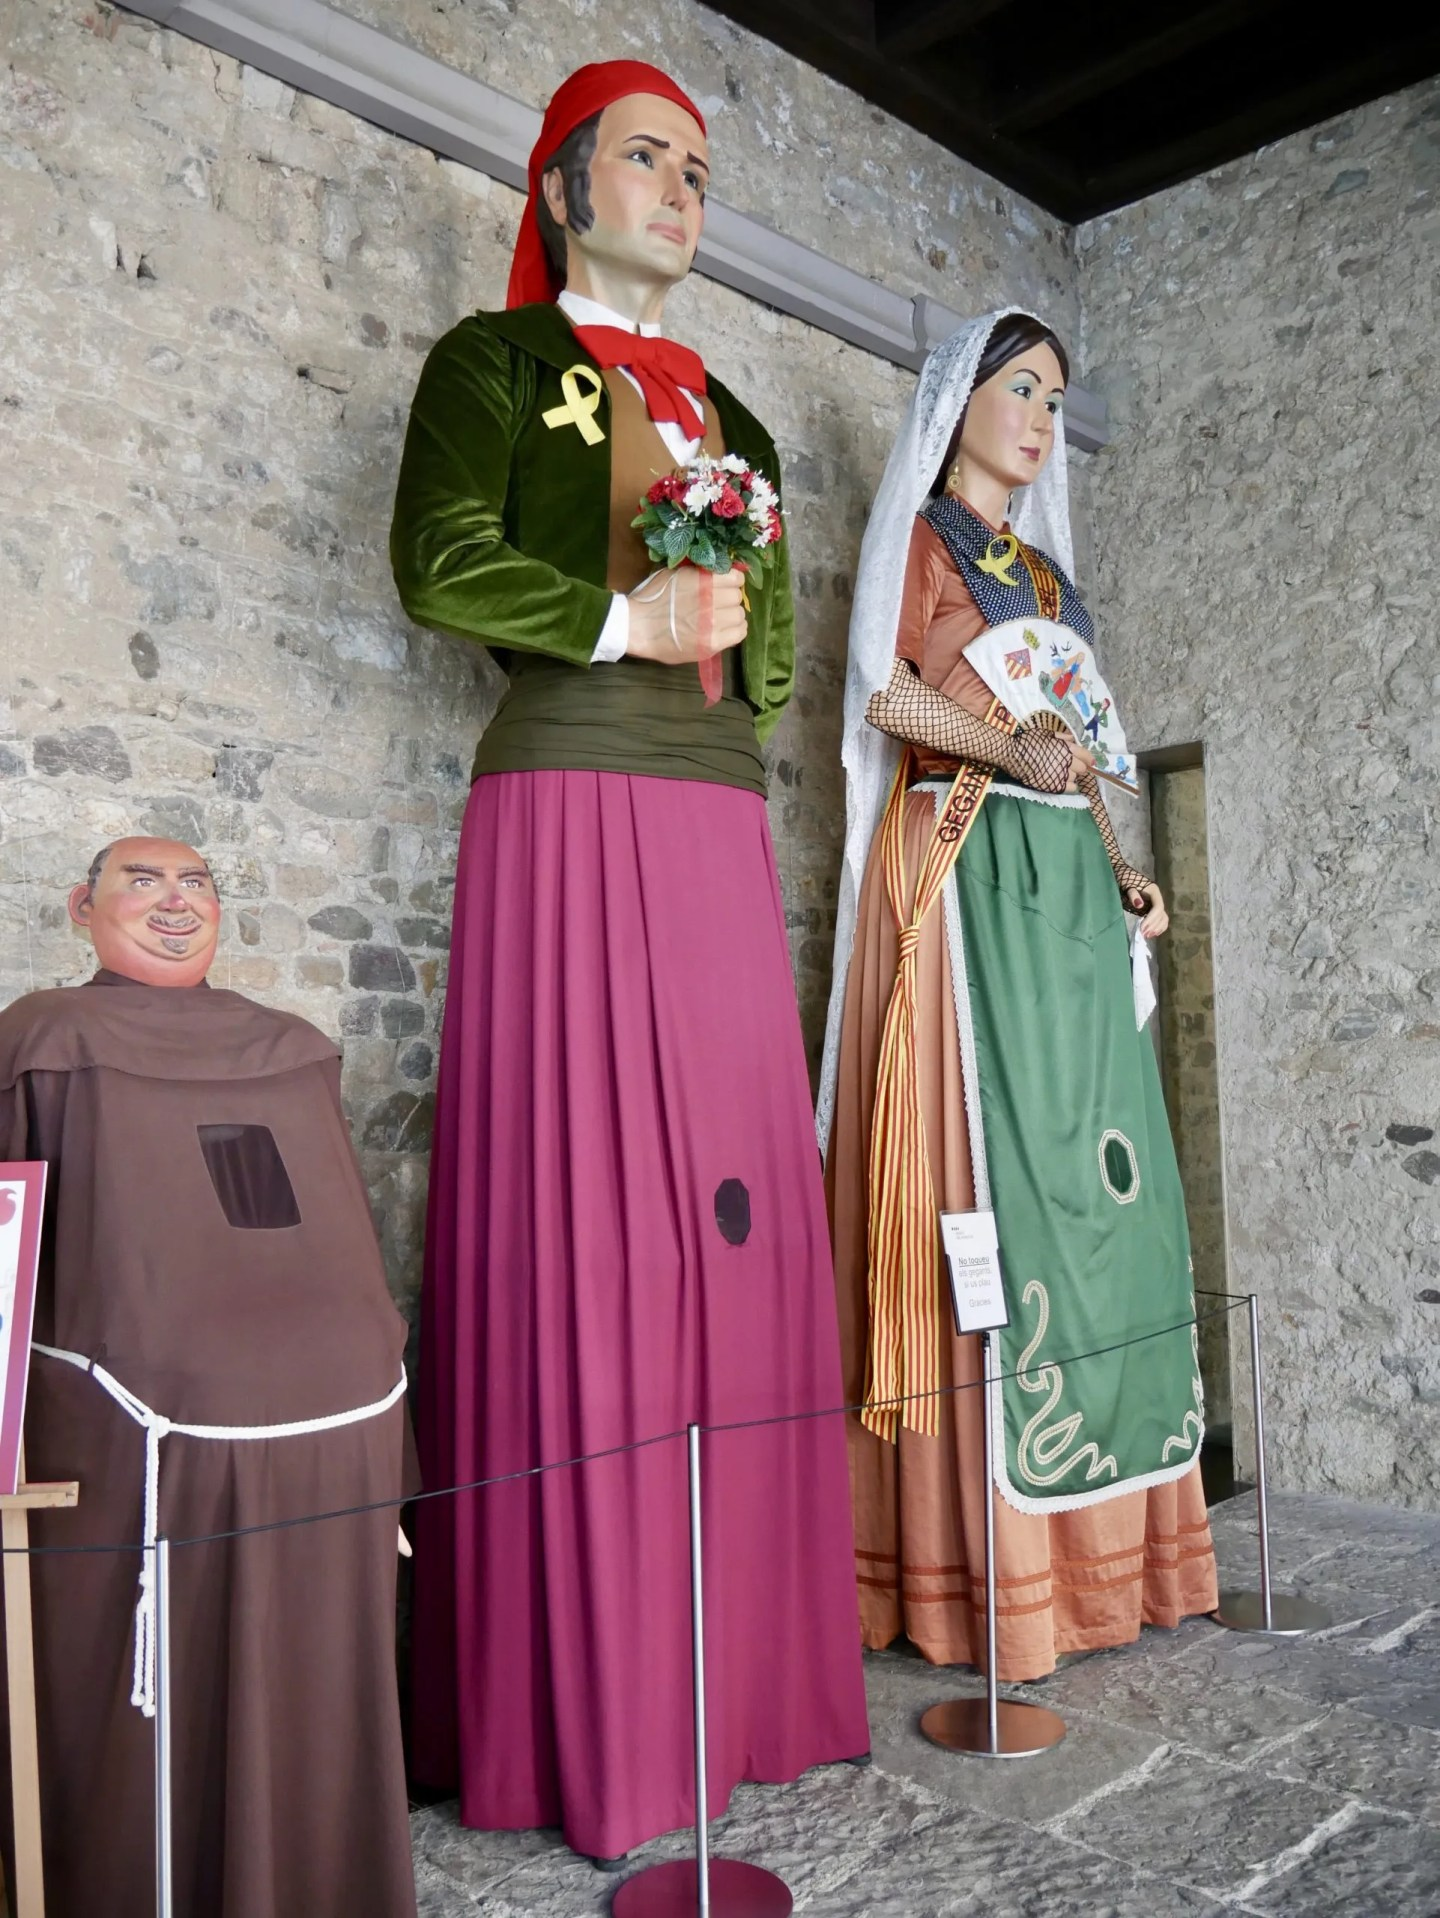 Gegants of Sant Cugat Joan and Marieta